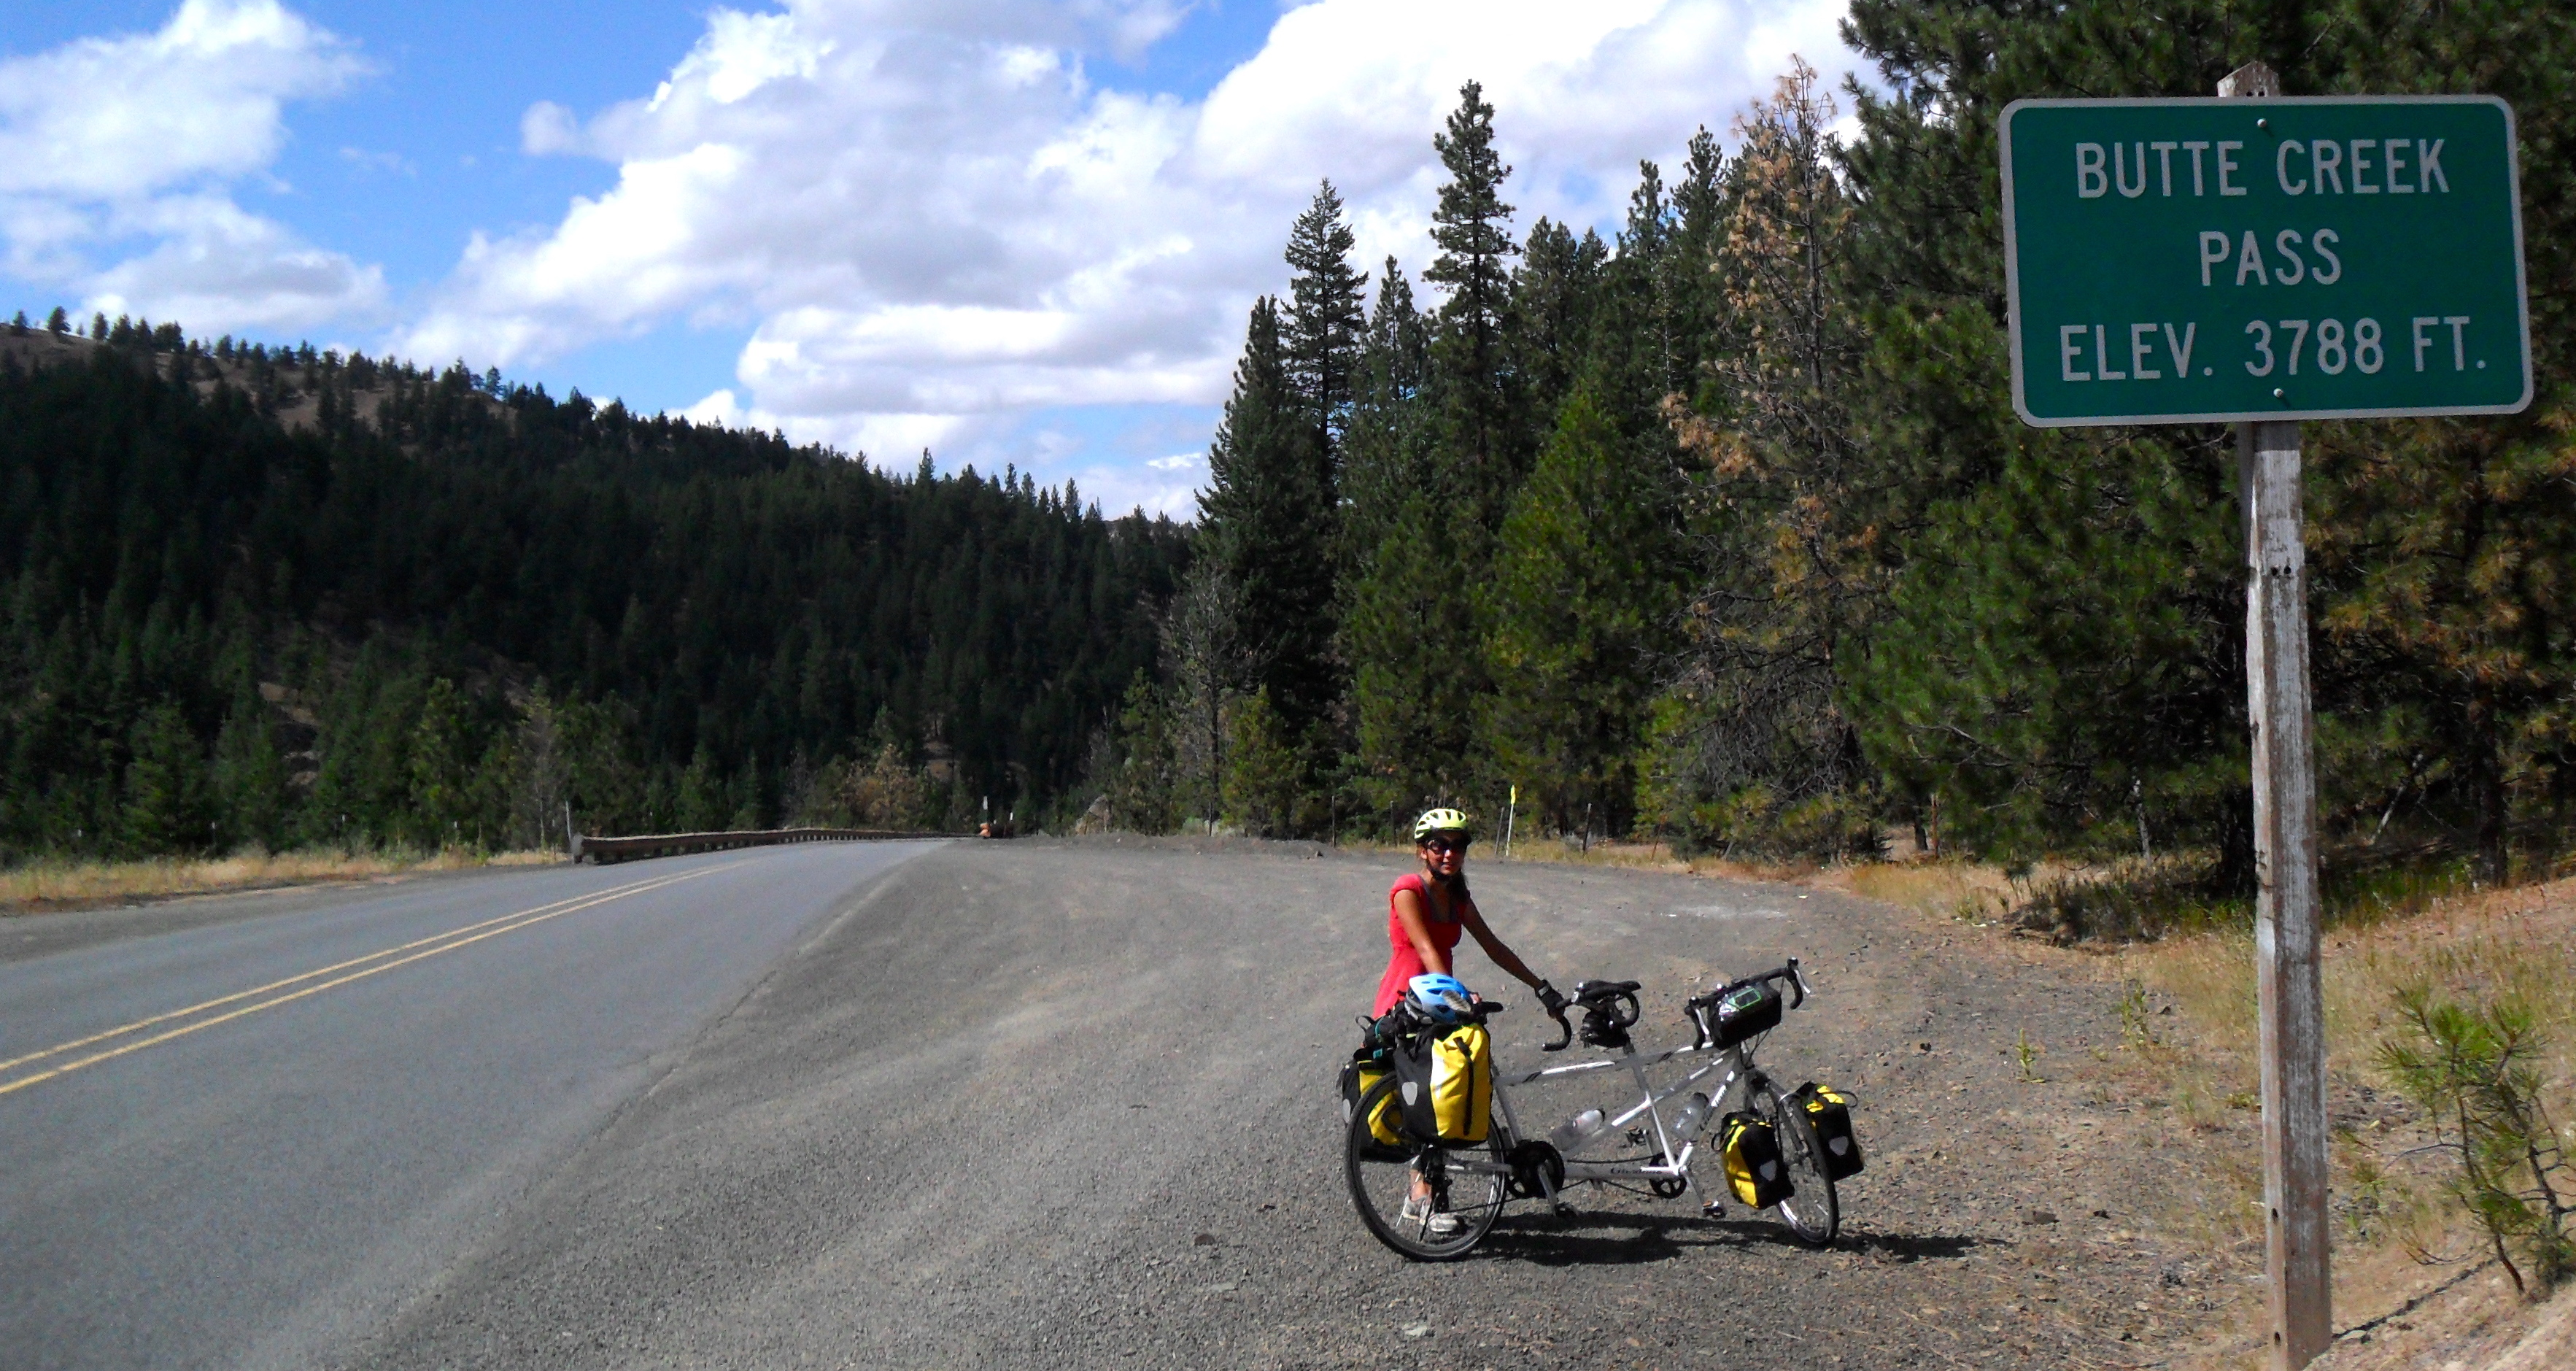 """A woman in a red dress stands on the right side of an empty road behind a white tandem bicycle with panniers on the front and back. A green sign is in the foreground and reads """"butte creek pass, elevation 3788 feet"""". Some green conifers are in the background and blue sky with some clouds."""